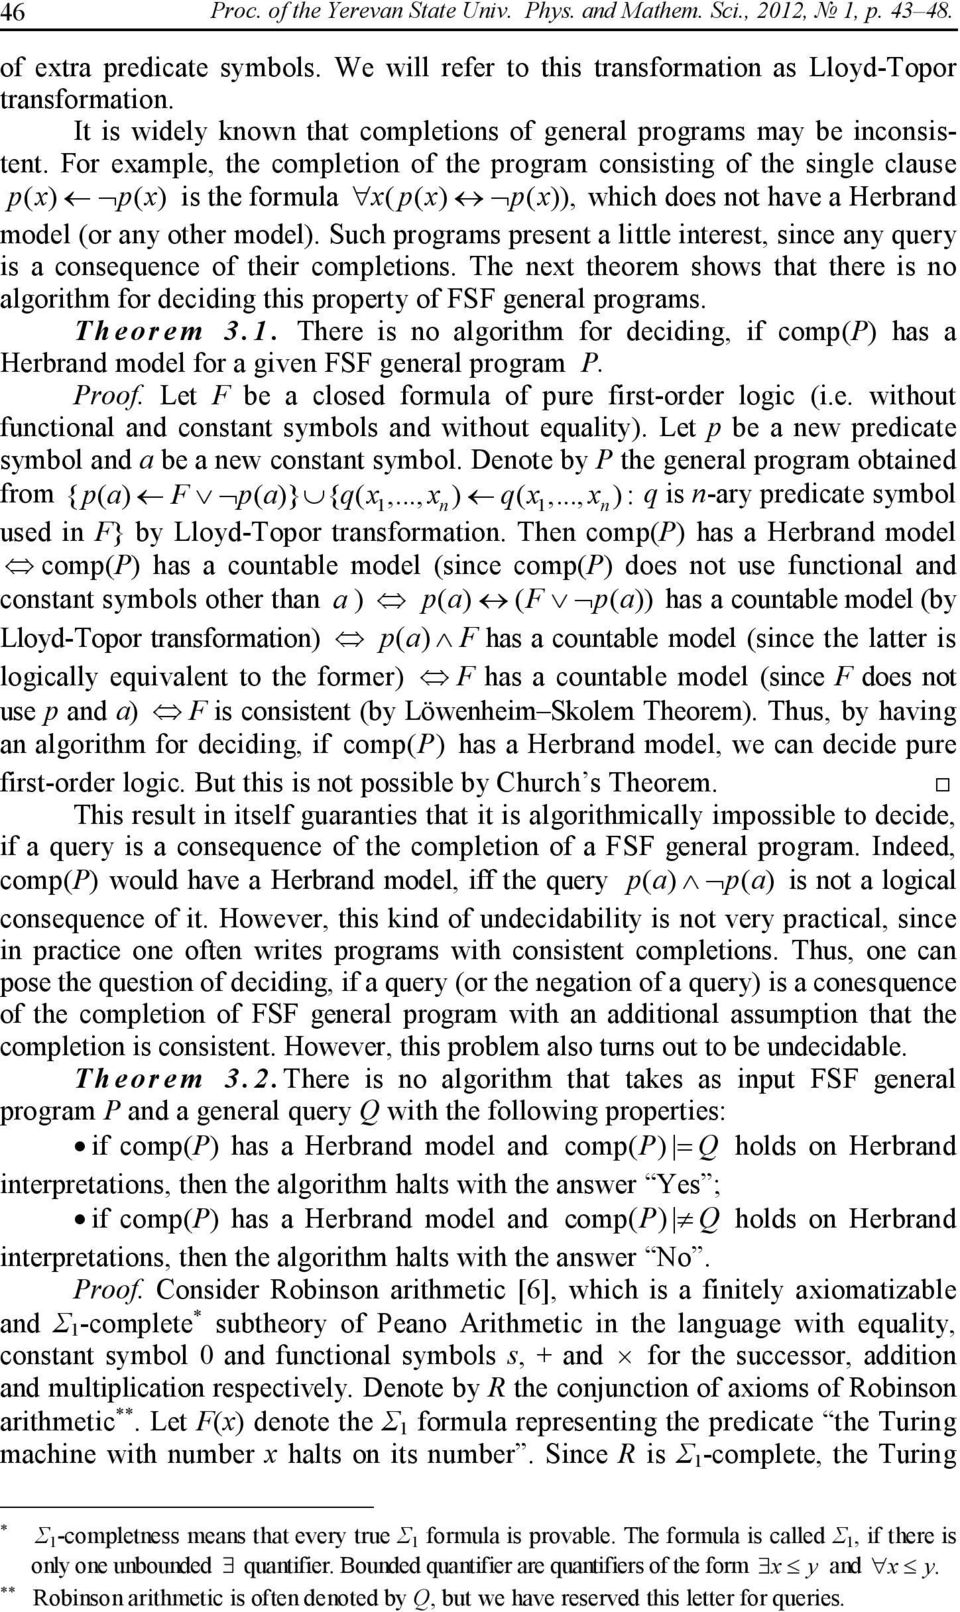 For example the completion of the program consisting of the single clause p( x) p( x) is the formula x( p( x) p( x)) which does not have a Herbrand model (or any other model).